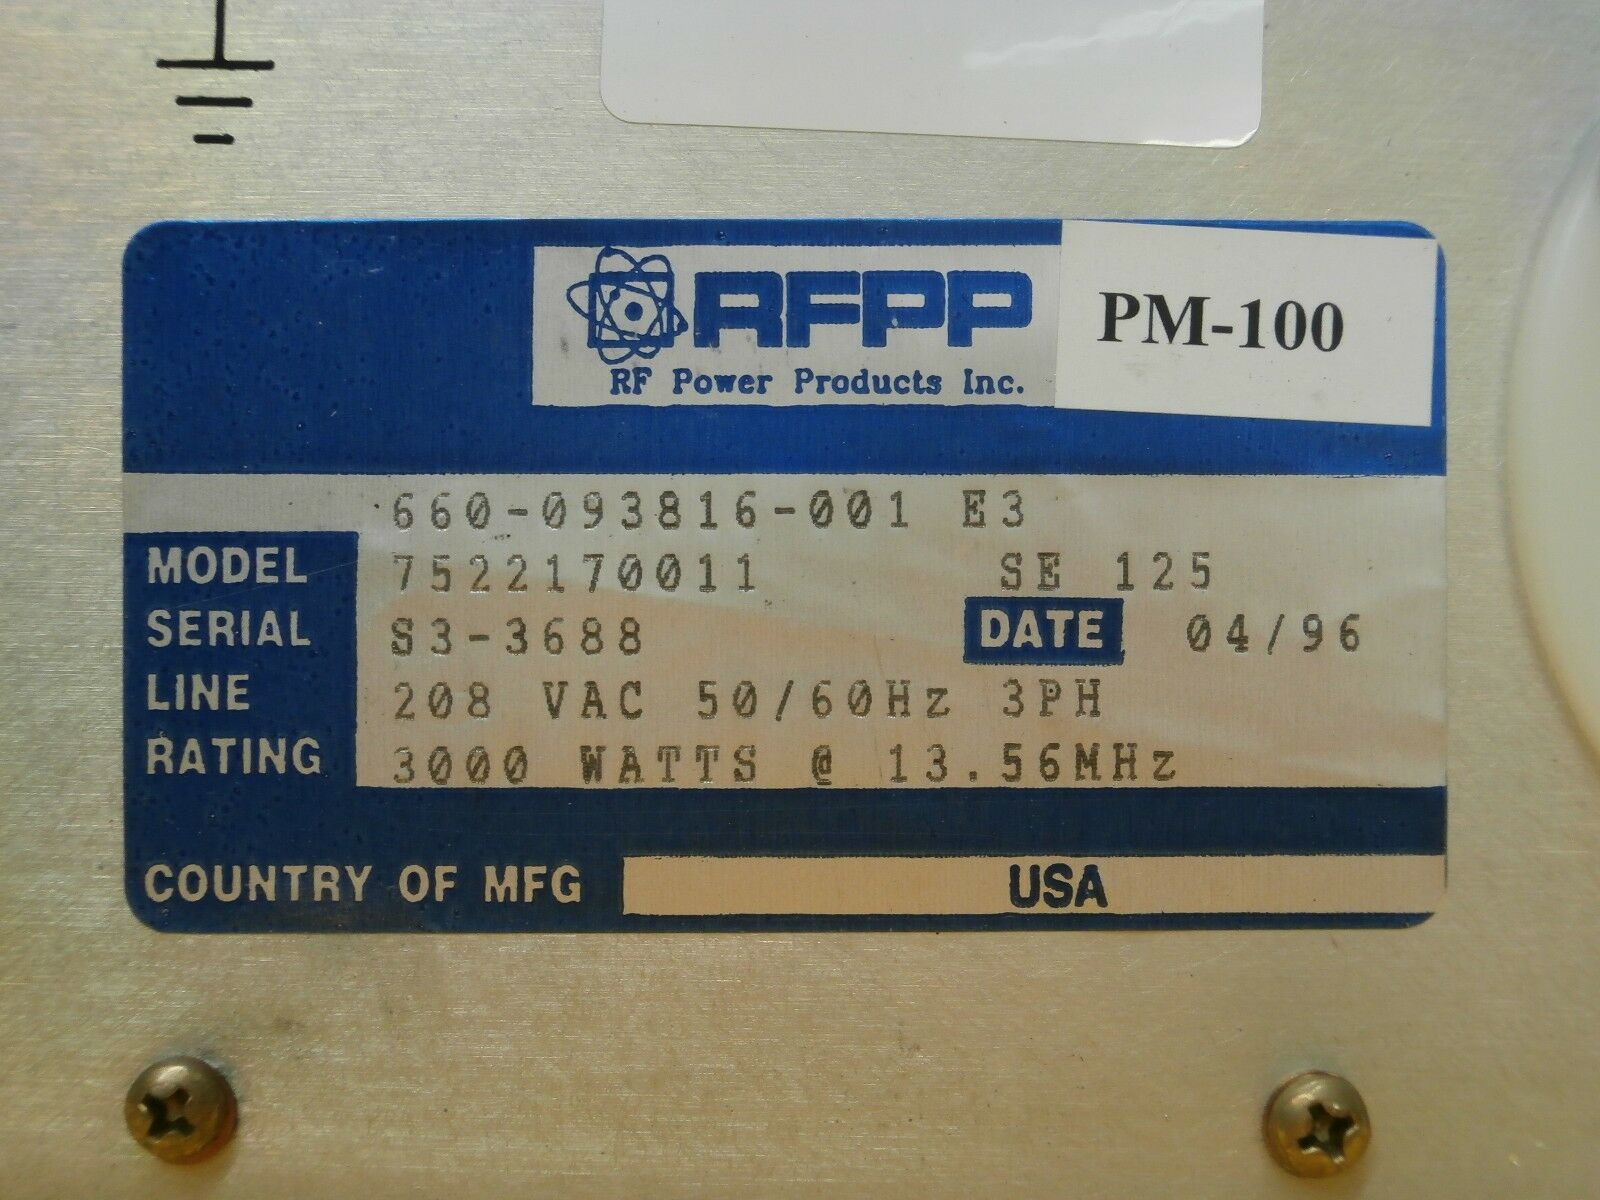 RF20H RF Power Products 660-093816-001 Generator 7522170011 Used Tested Working